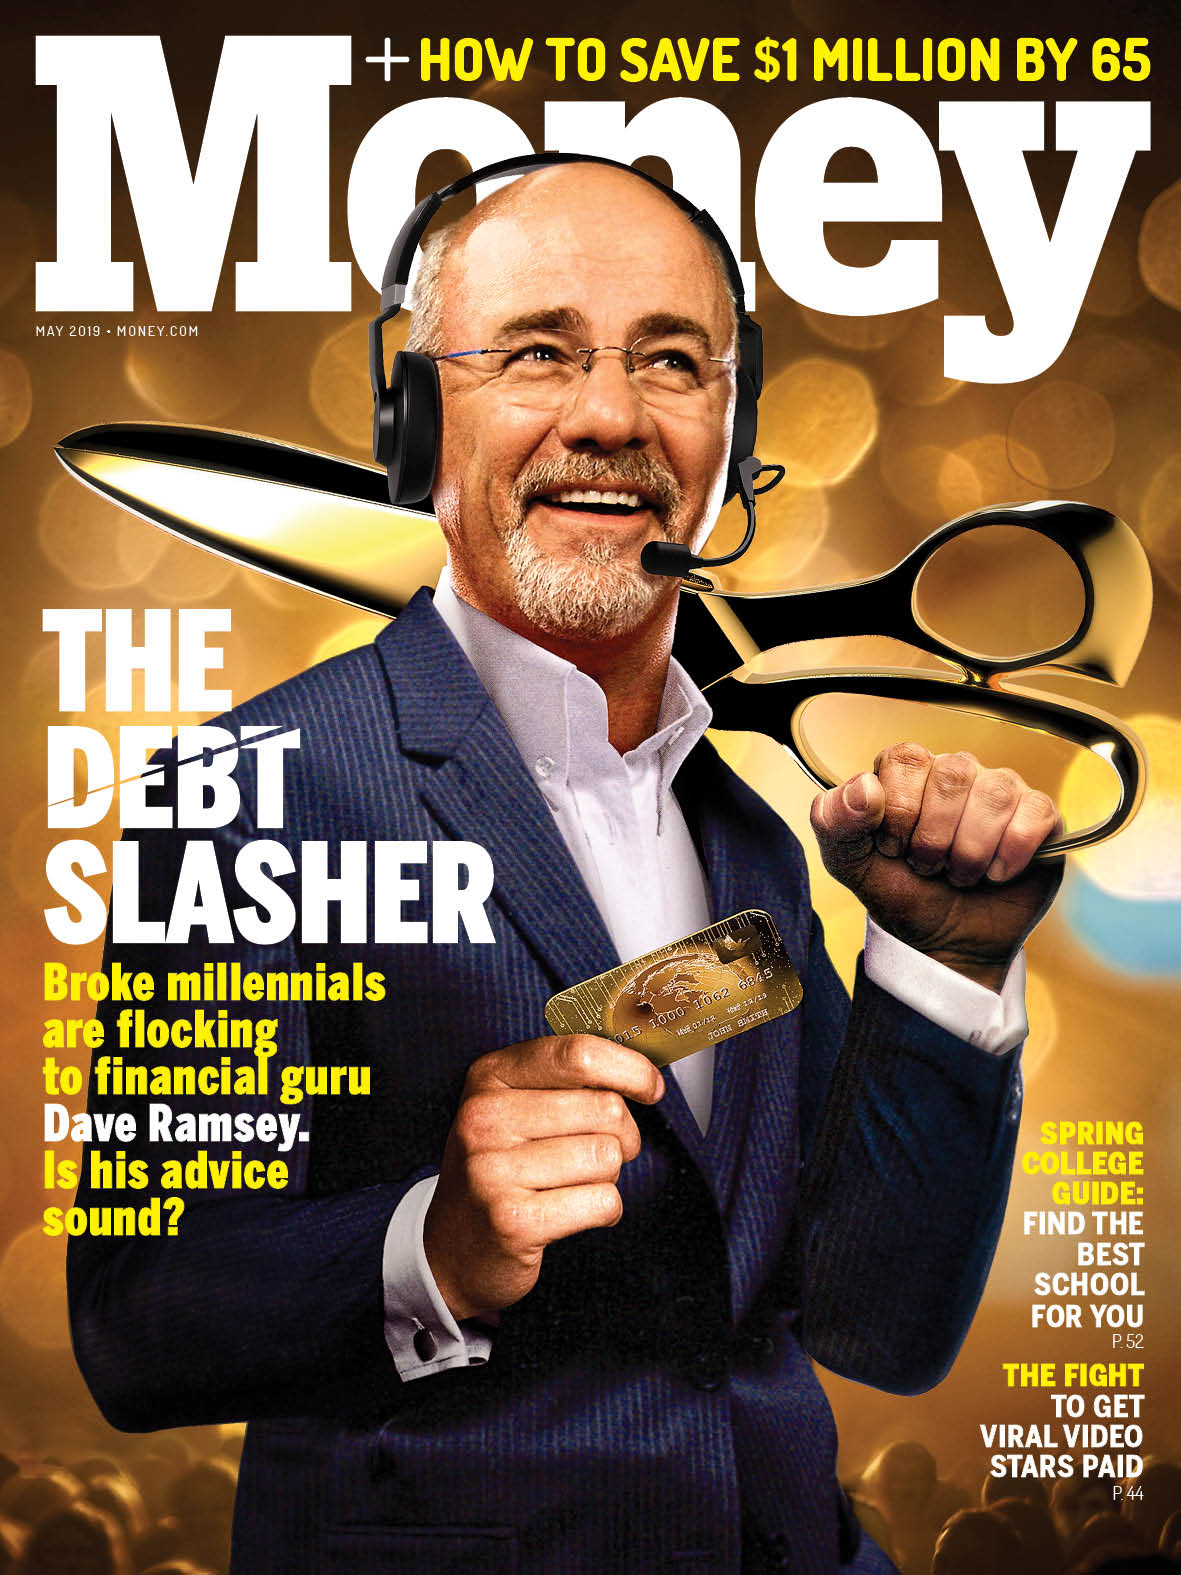 In rant we trust: Dave Ramsey's network encom- passes radio, TV, live events, and millions across multiple social media channels.